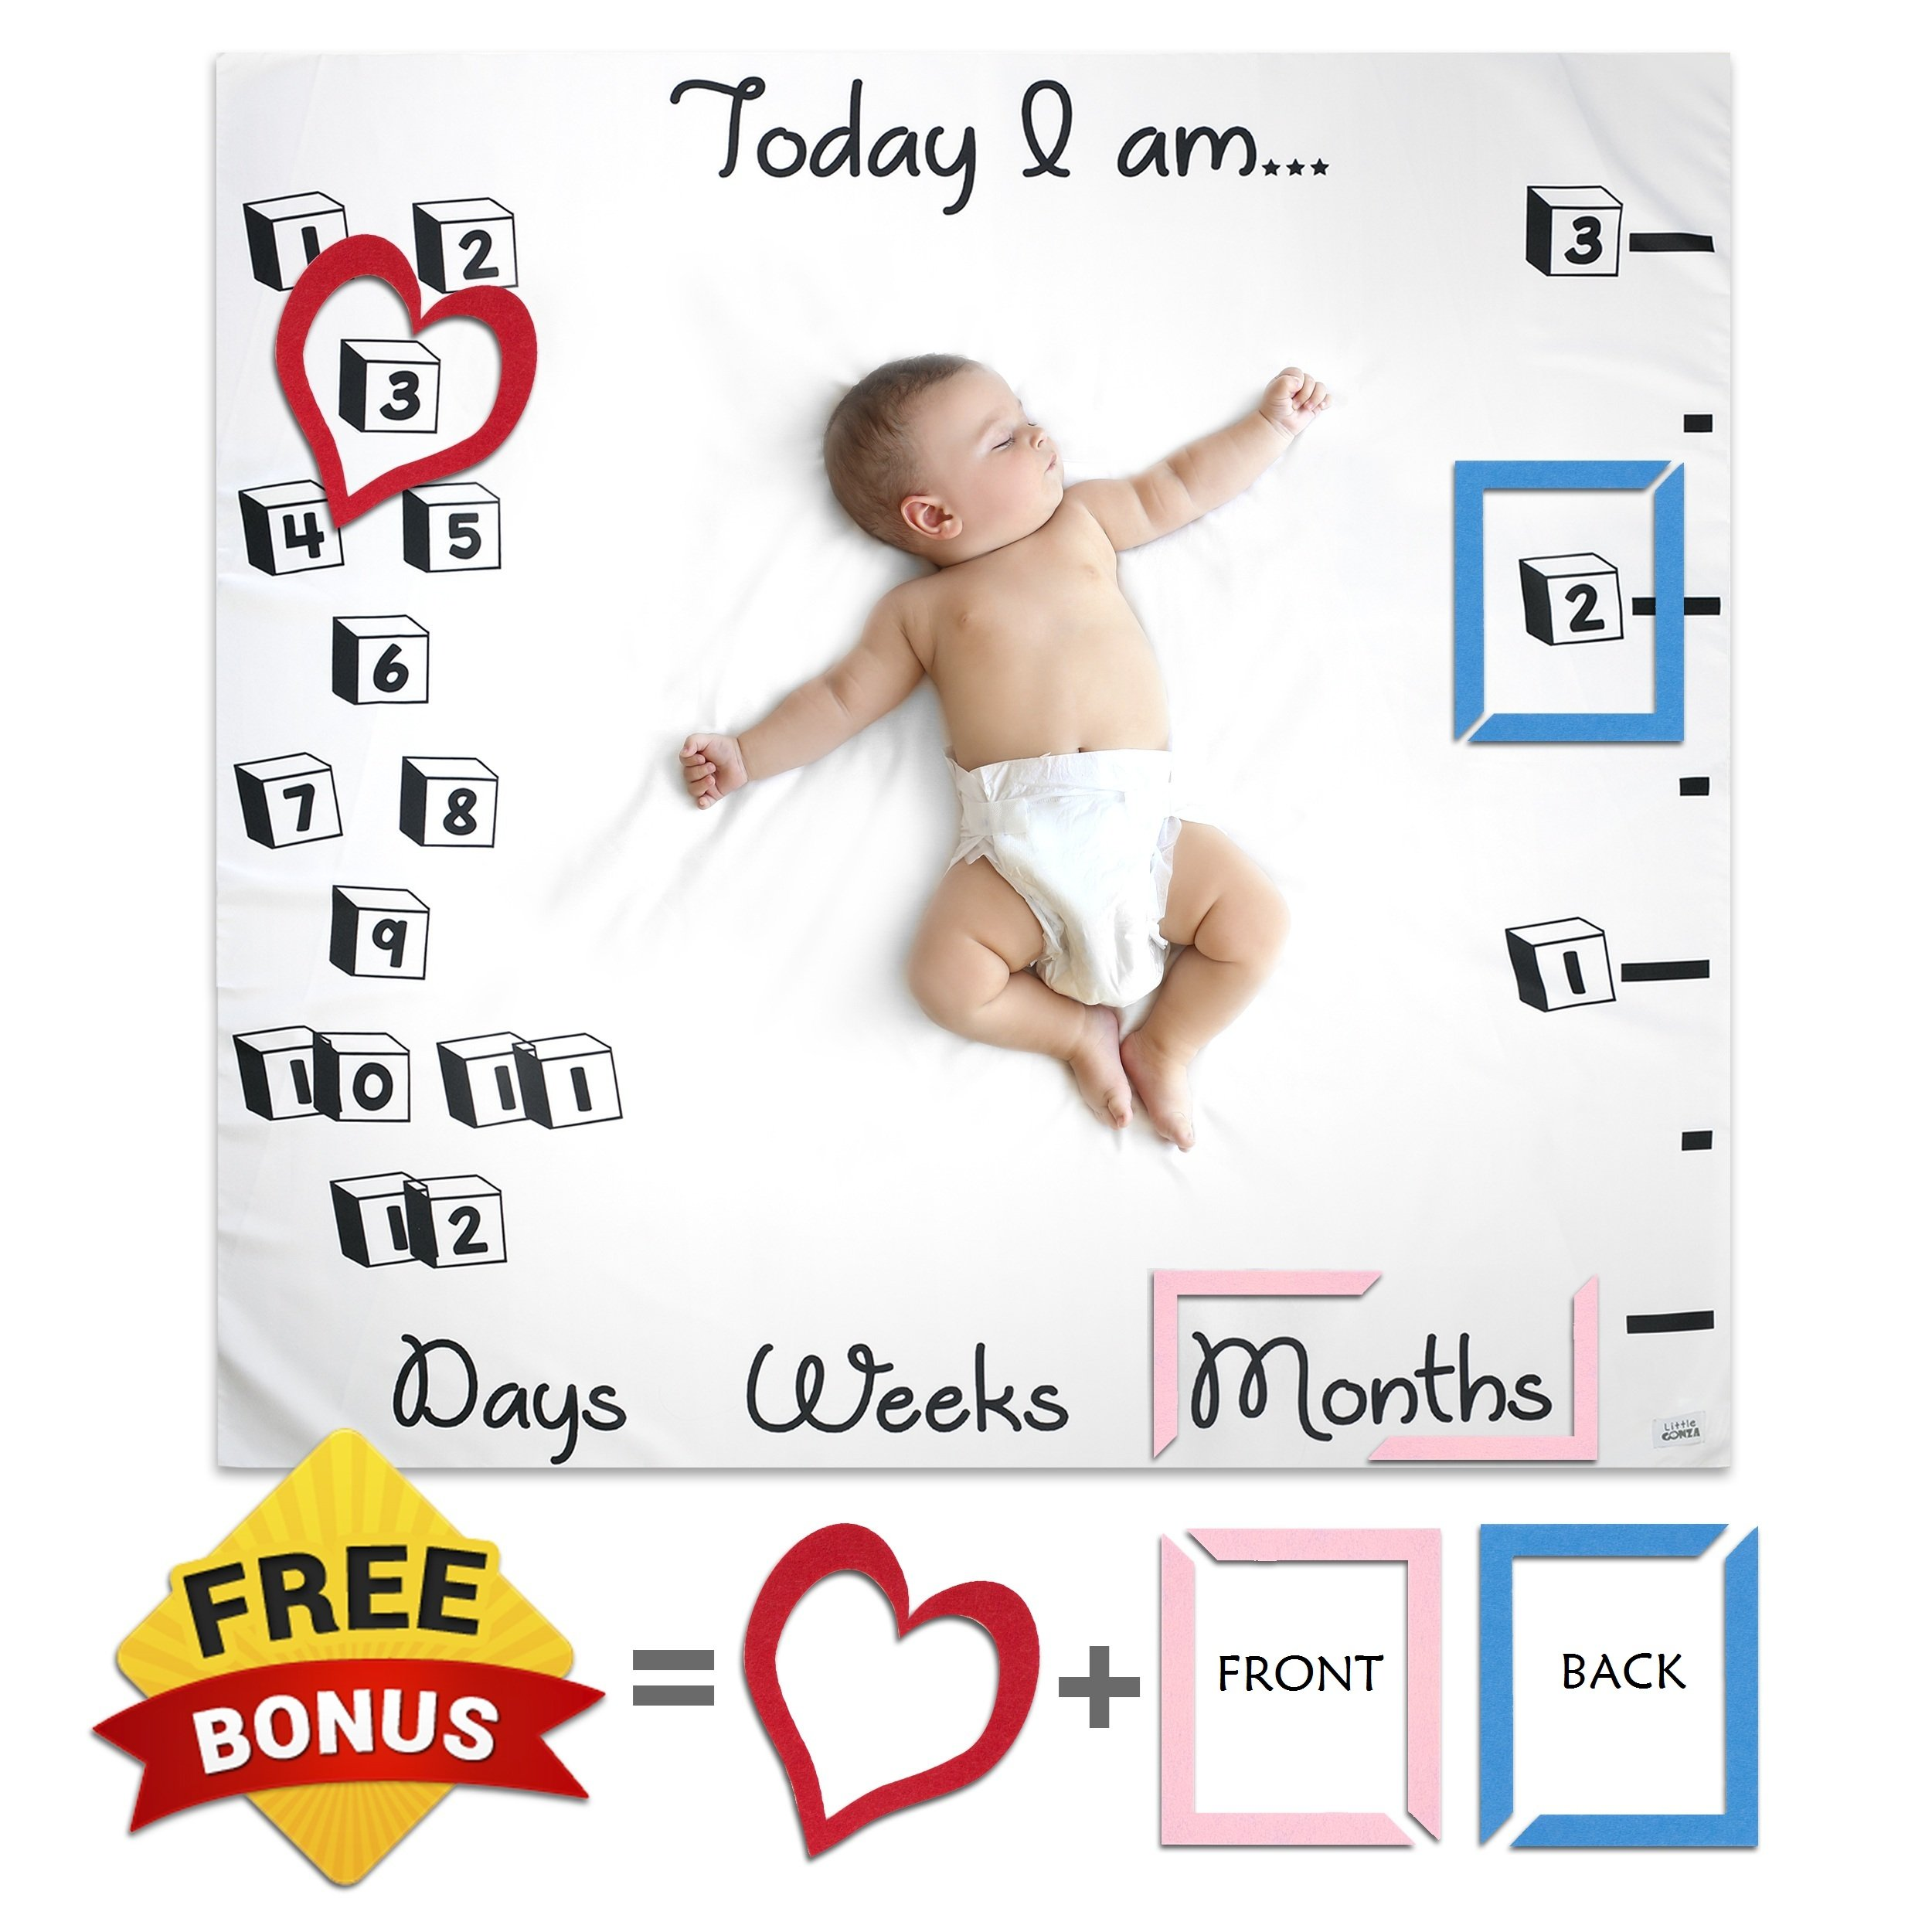 Large Unisex Baby Monthly Milestone Blanket Set With Photo Prop Felt Frames By Little Gonza - Photography Backdrop For Boy Girl Newborn Infant Toddler / Perfect For Baby Registry, New Mom, Baby Shower